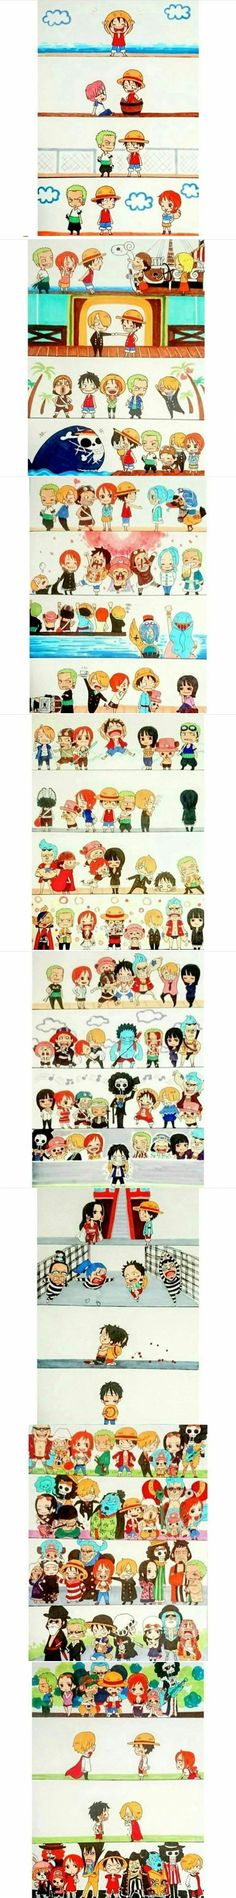 One piece in a single image One Piece Meme, Anime One Piece, One Piece Funny, Zoro One Piece, One Piece Comic, One Piece Fanart, One Piece Pictures, One Piece Images, Top Anime Series